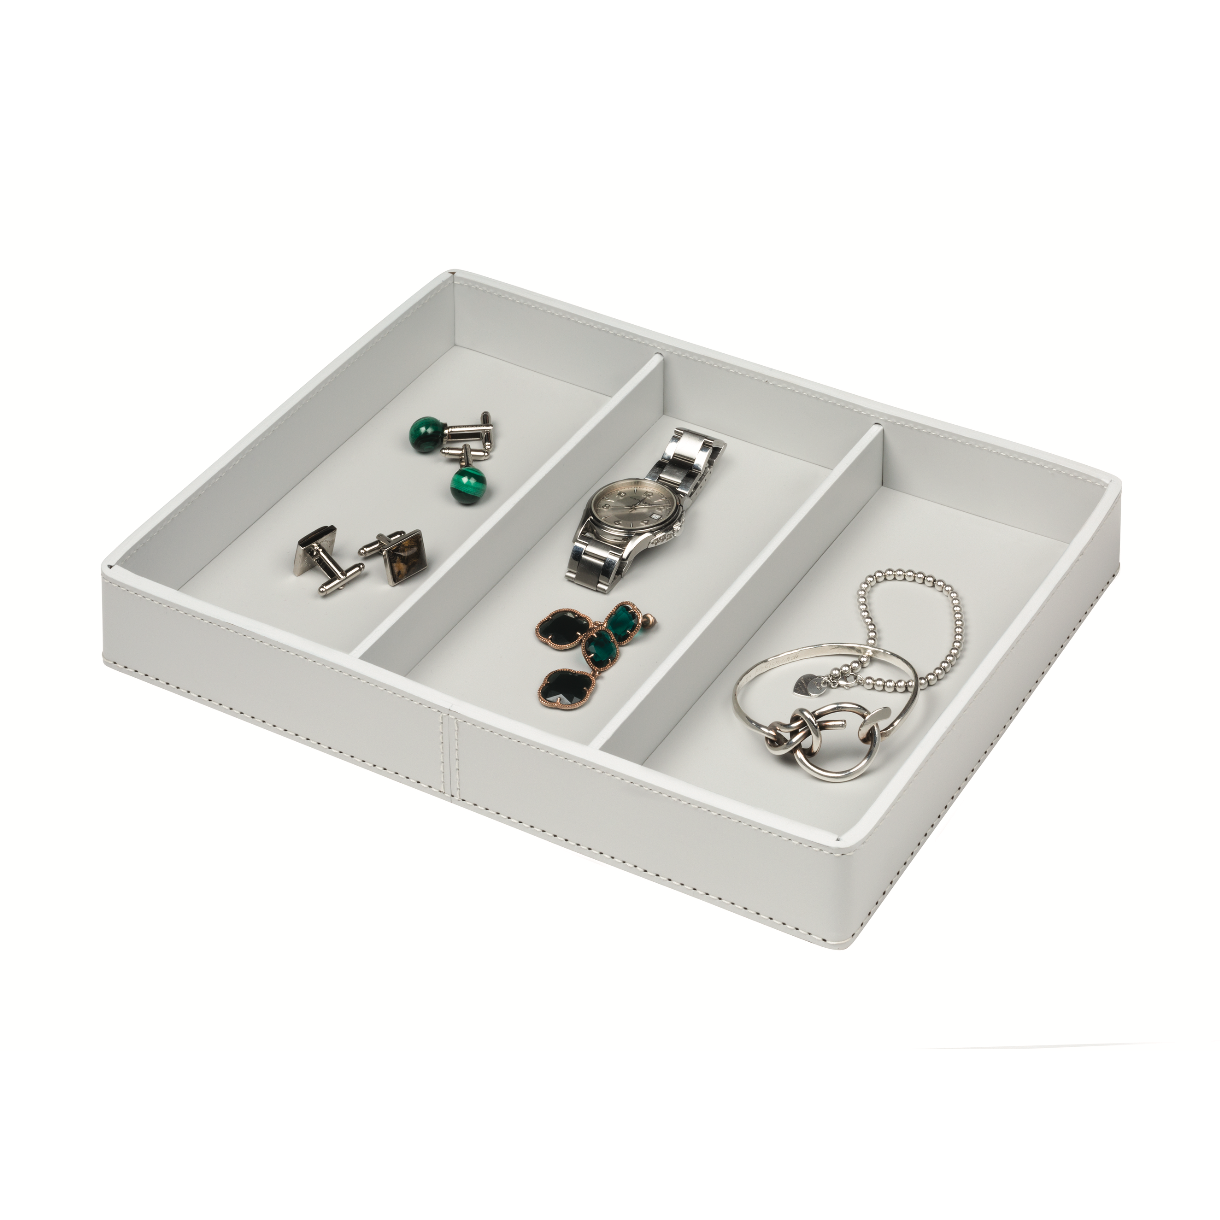 NARCISO JEWELERY TRAY